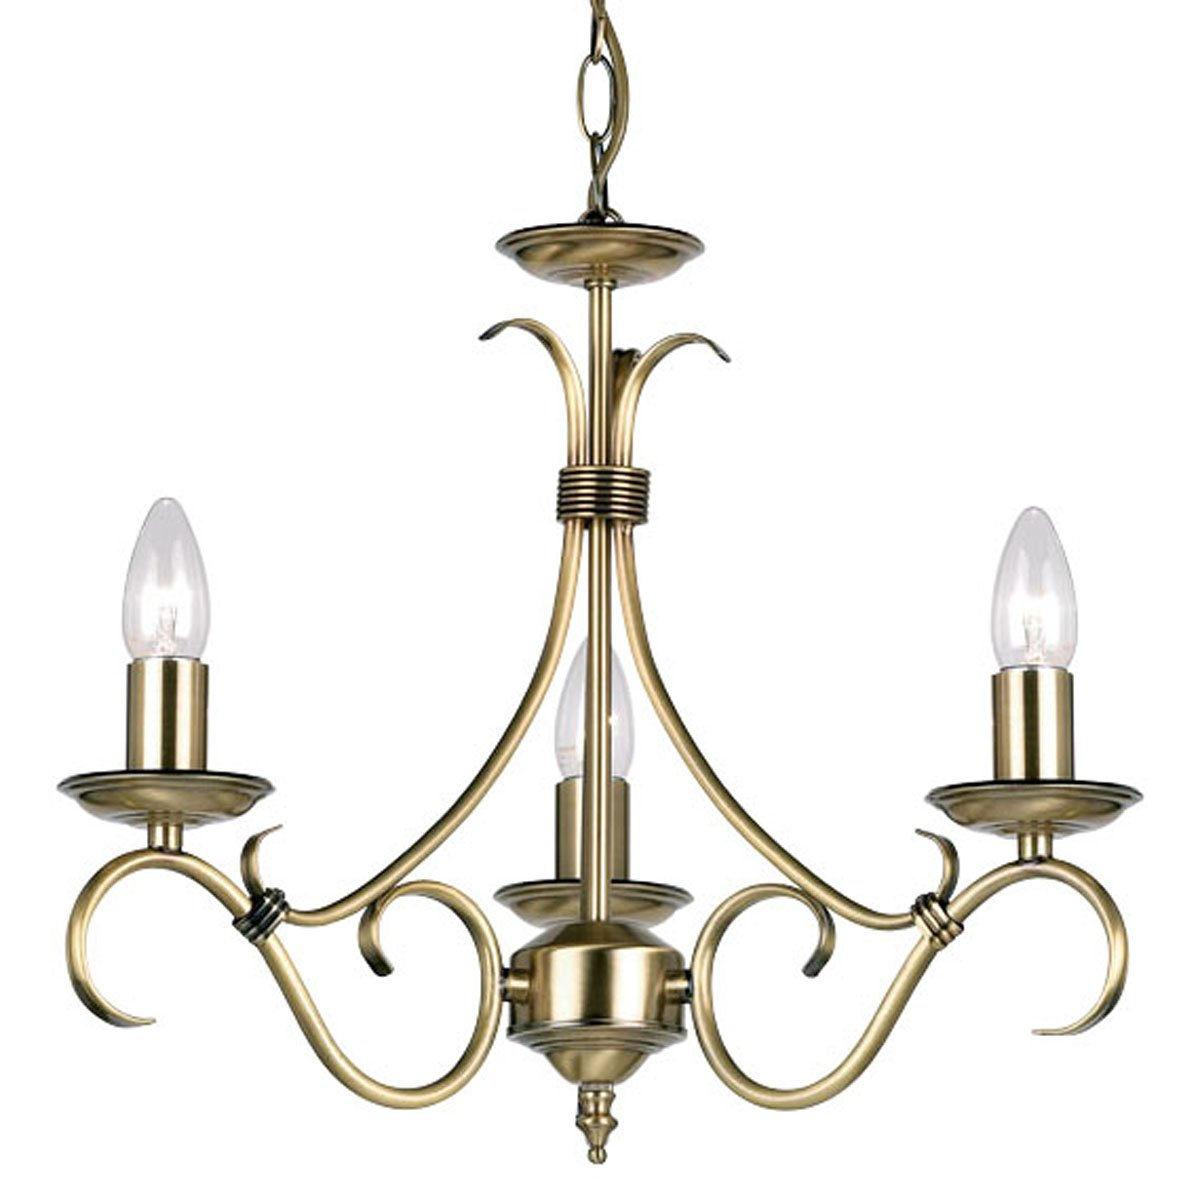 3 Light Candle Chandelier Endon